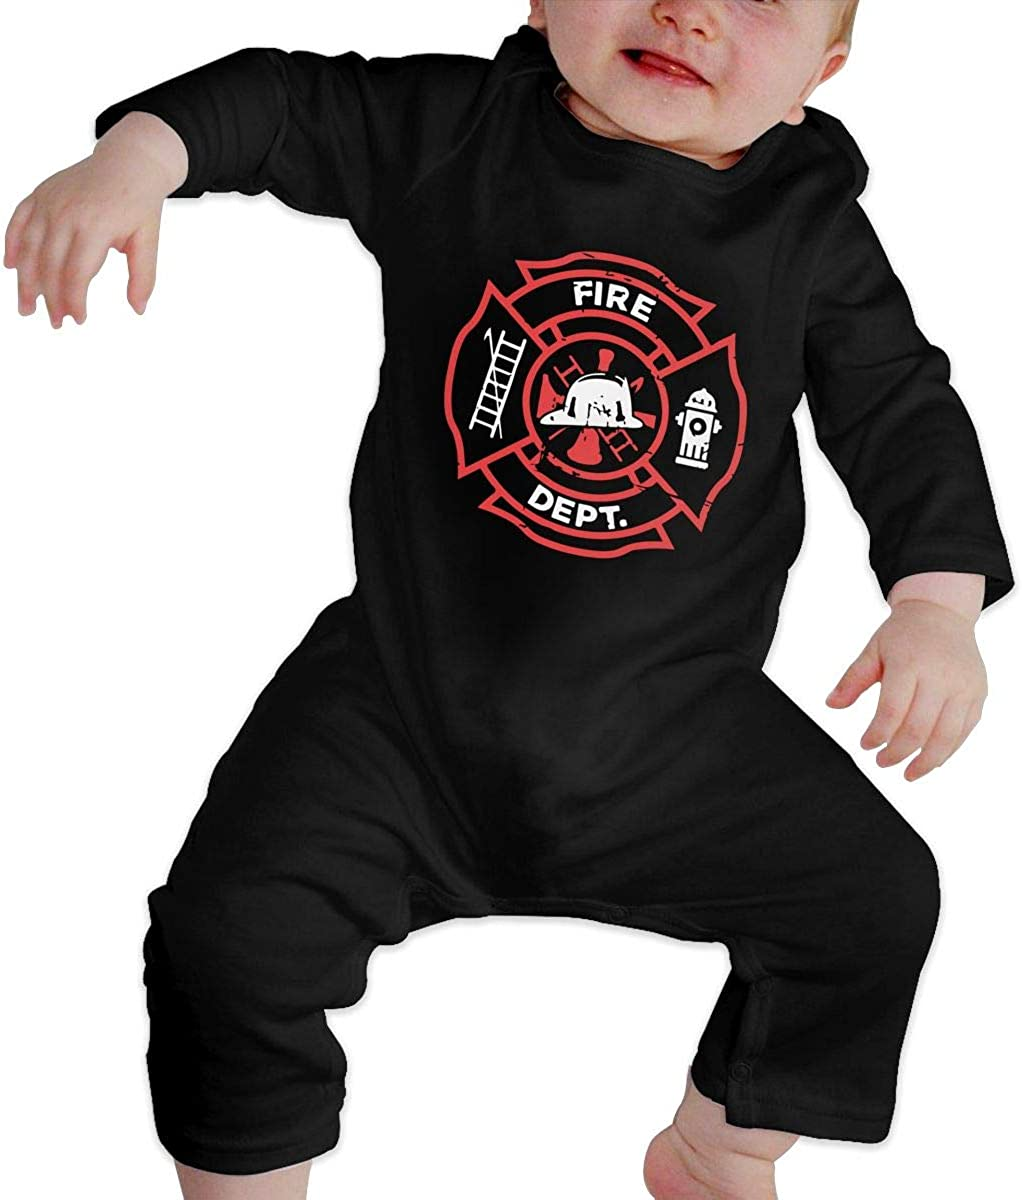 BKNGDG8Q Toddler Baby Boy Romper Jumpsuit Distressed Firefighter Organic One-Piece Kid Pajamas Clothes